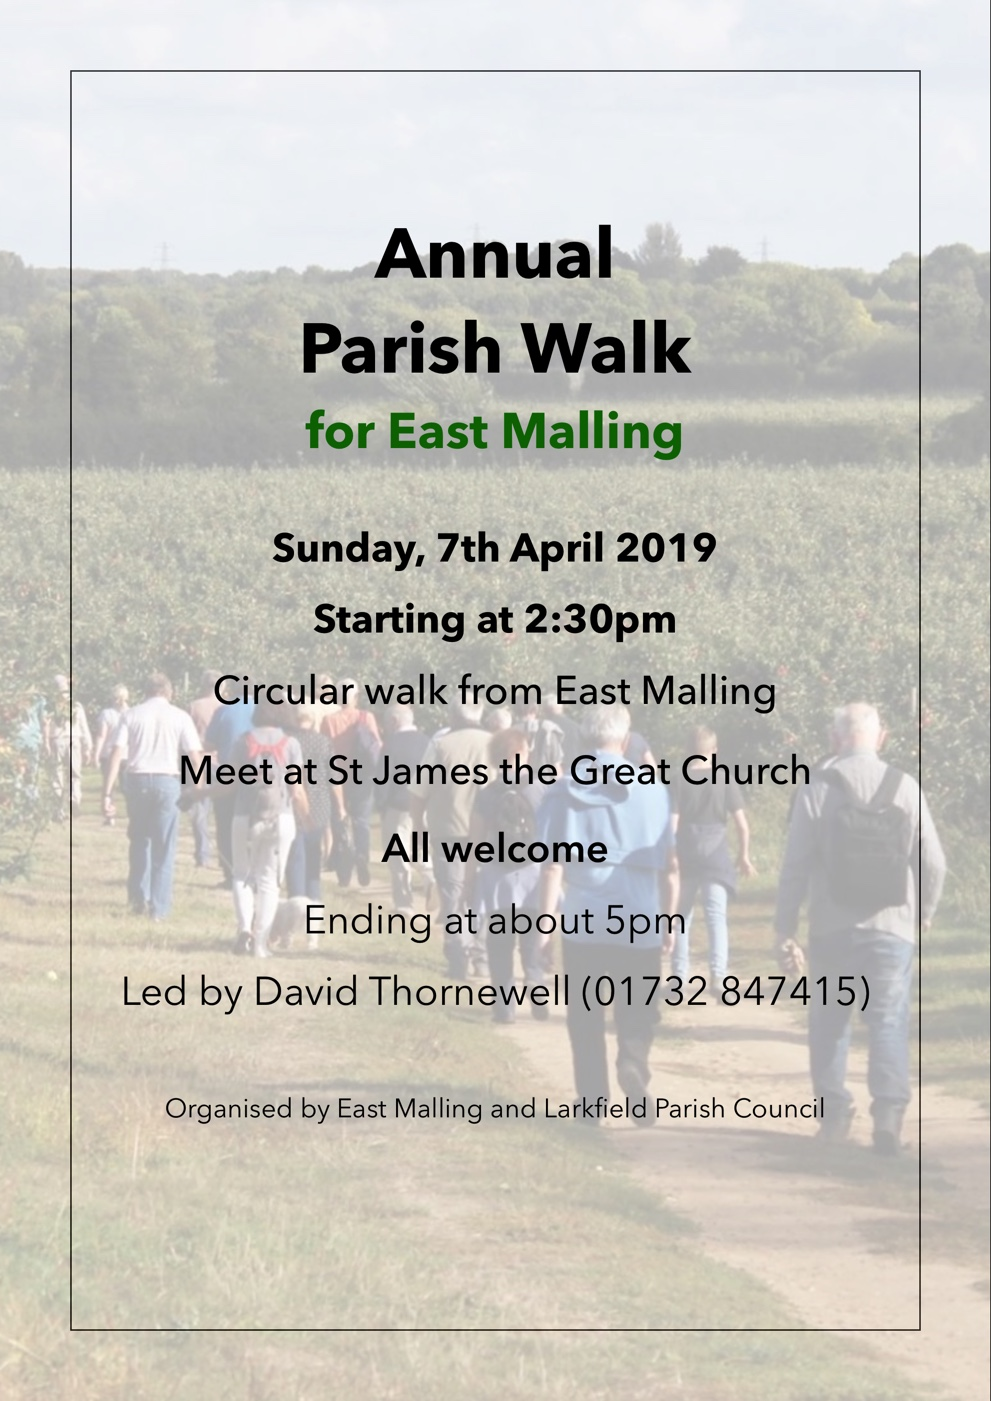 Annual Parish Walk for East Malling